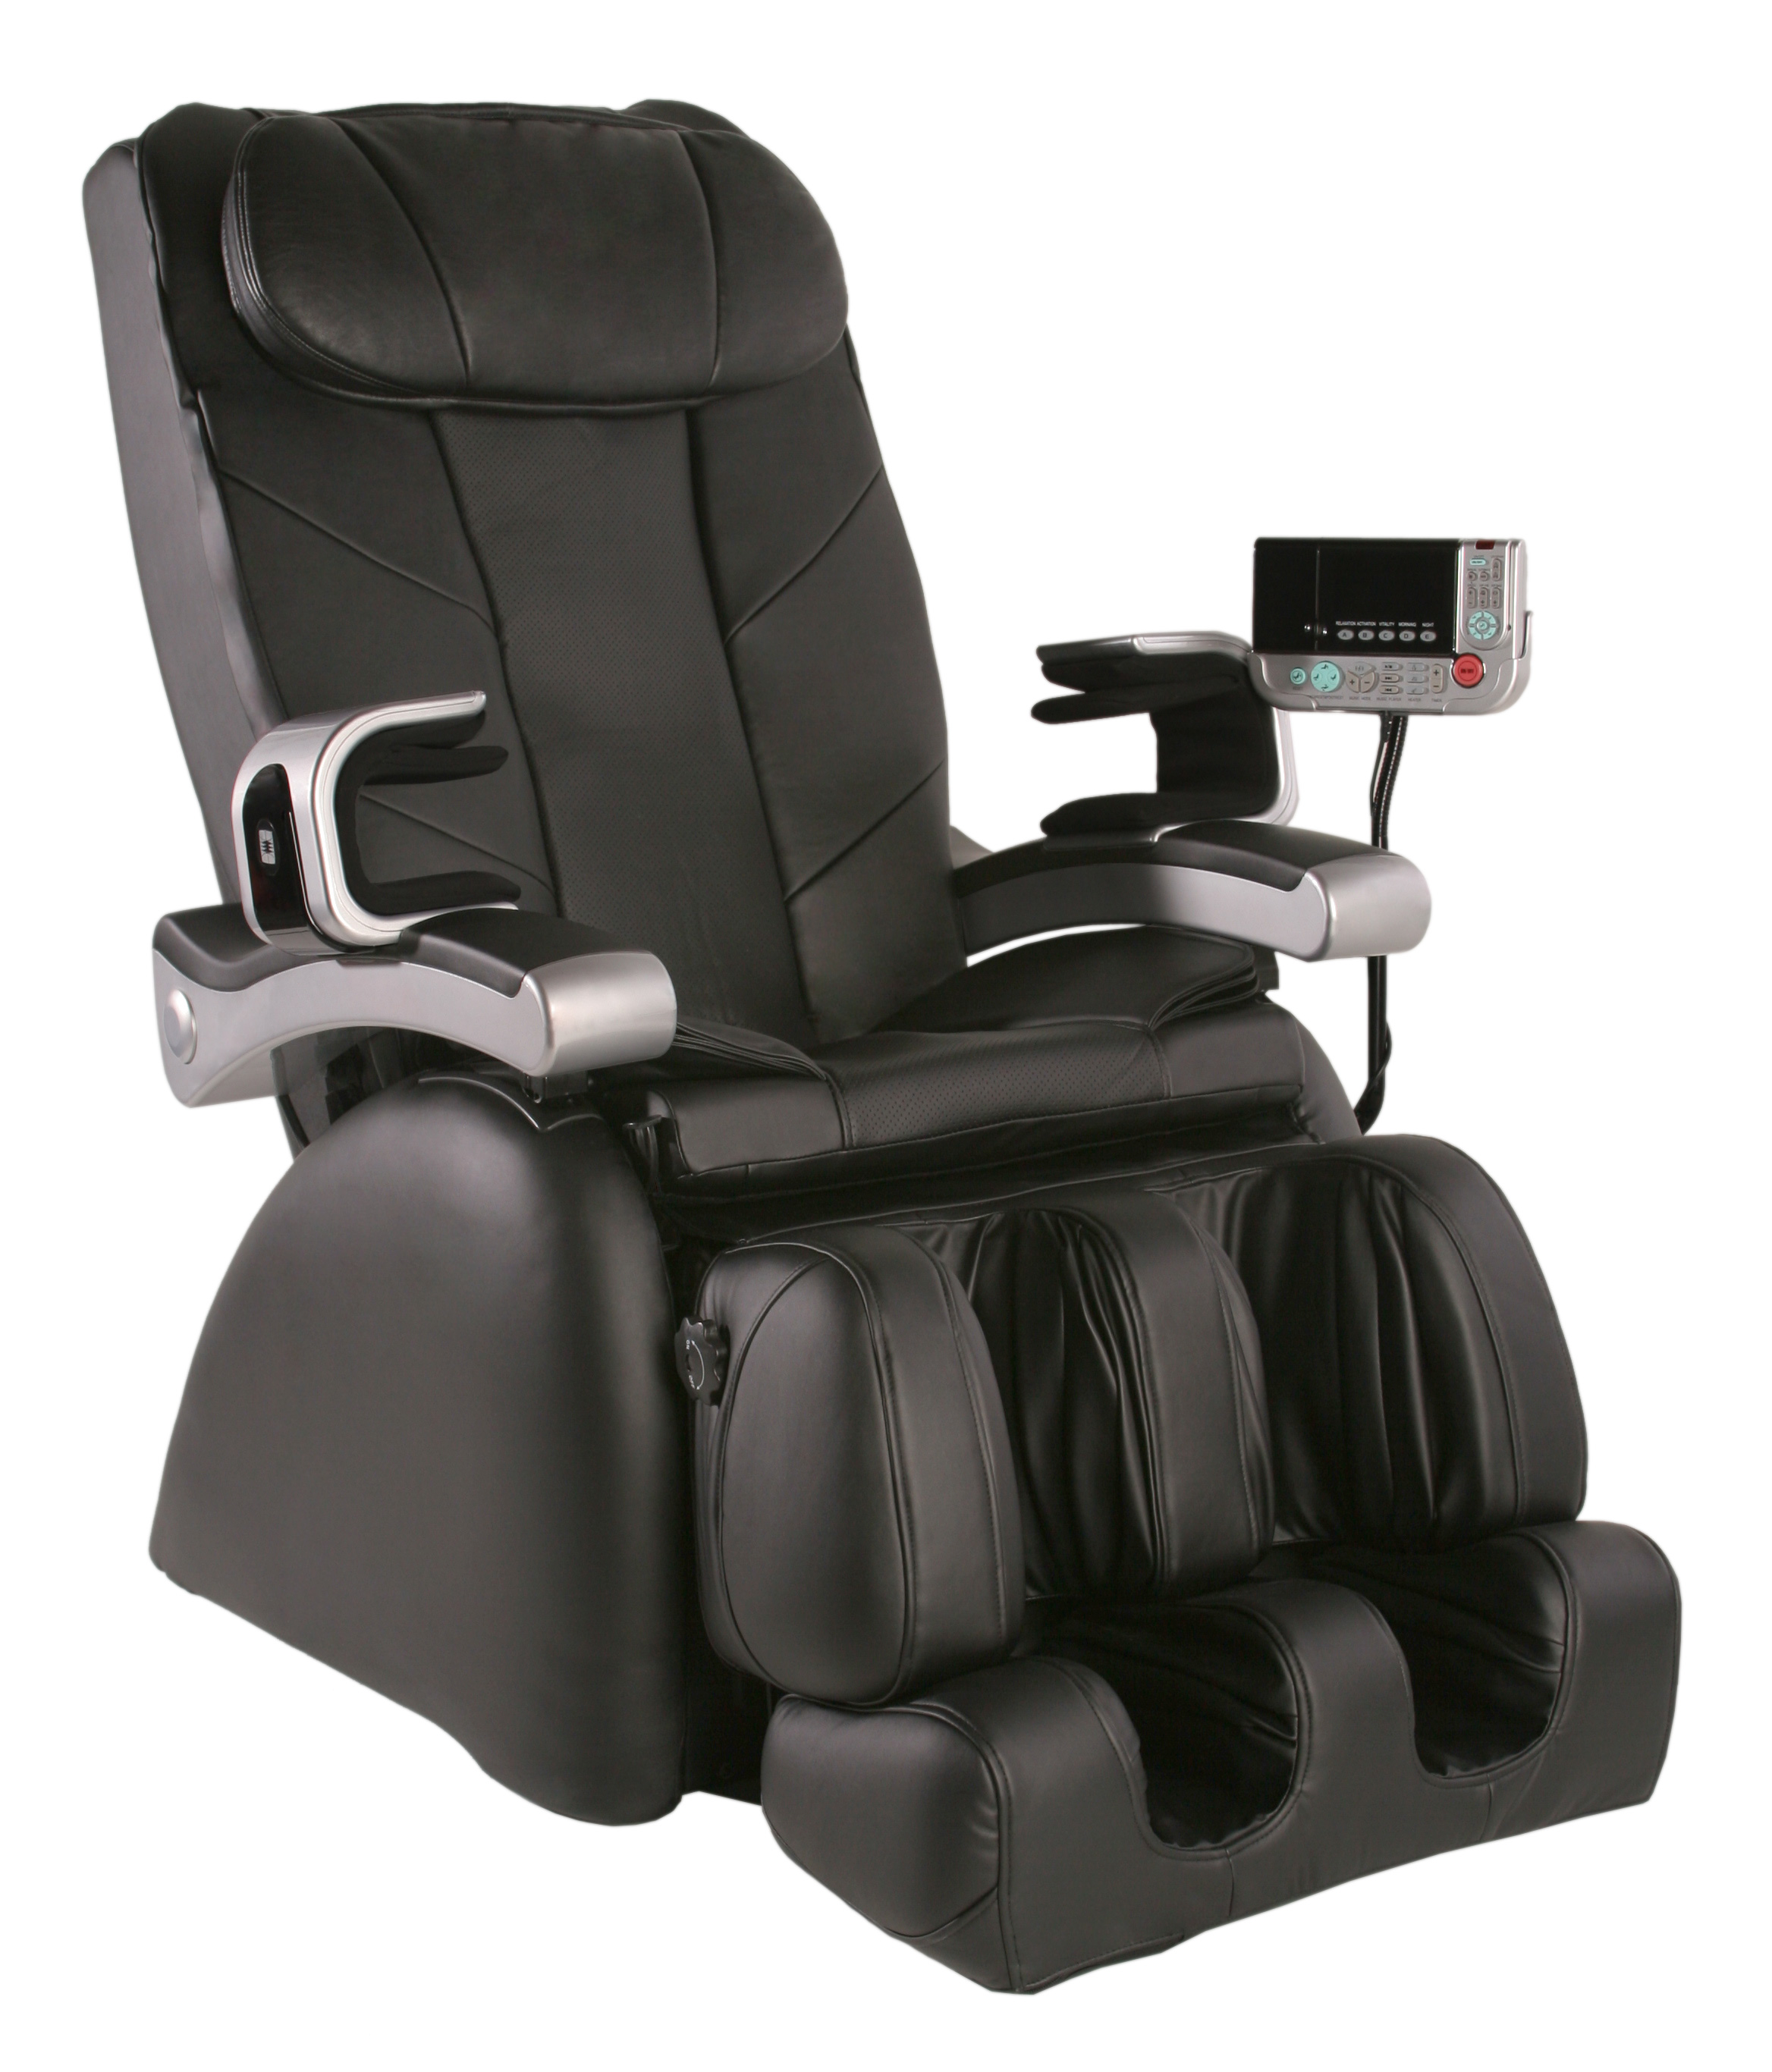 chairs htm discount massage image chair upright shiatsu omega sharper leather